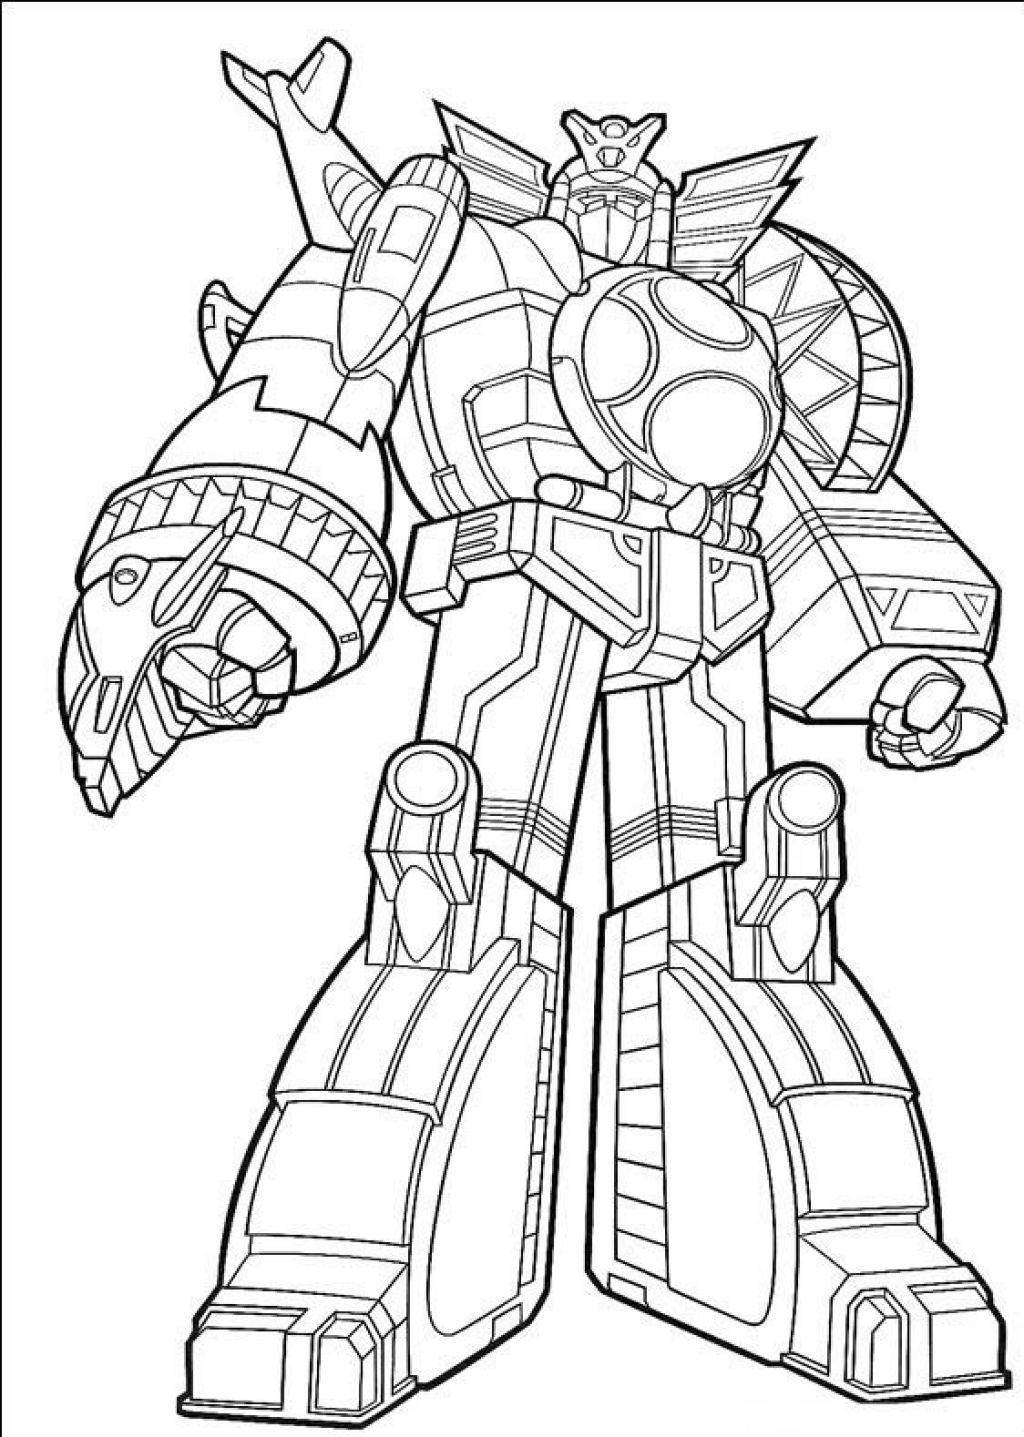 Power Rangers Rpm Coloring Pages Rangers Paintings Search Result At Paintingvalley